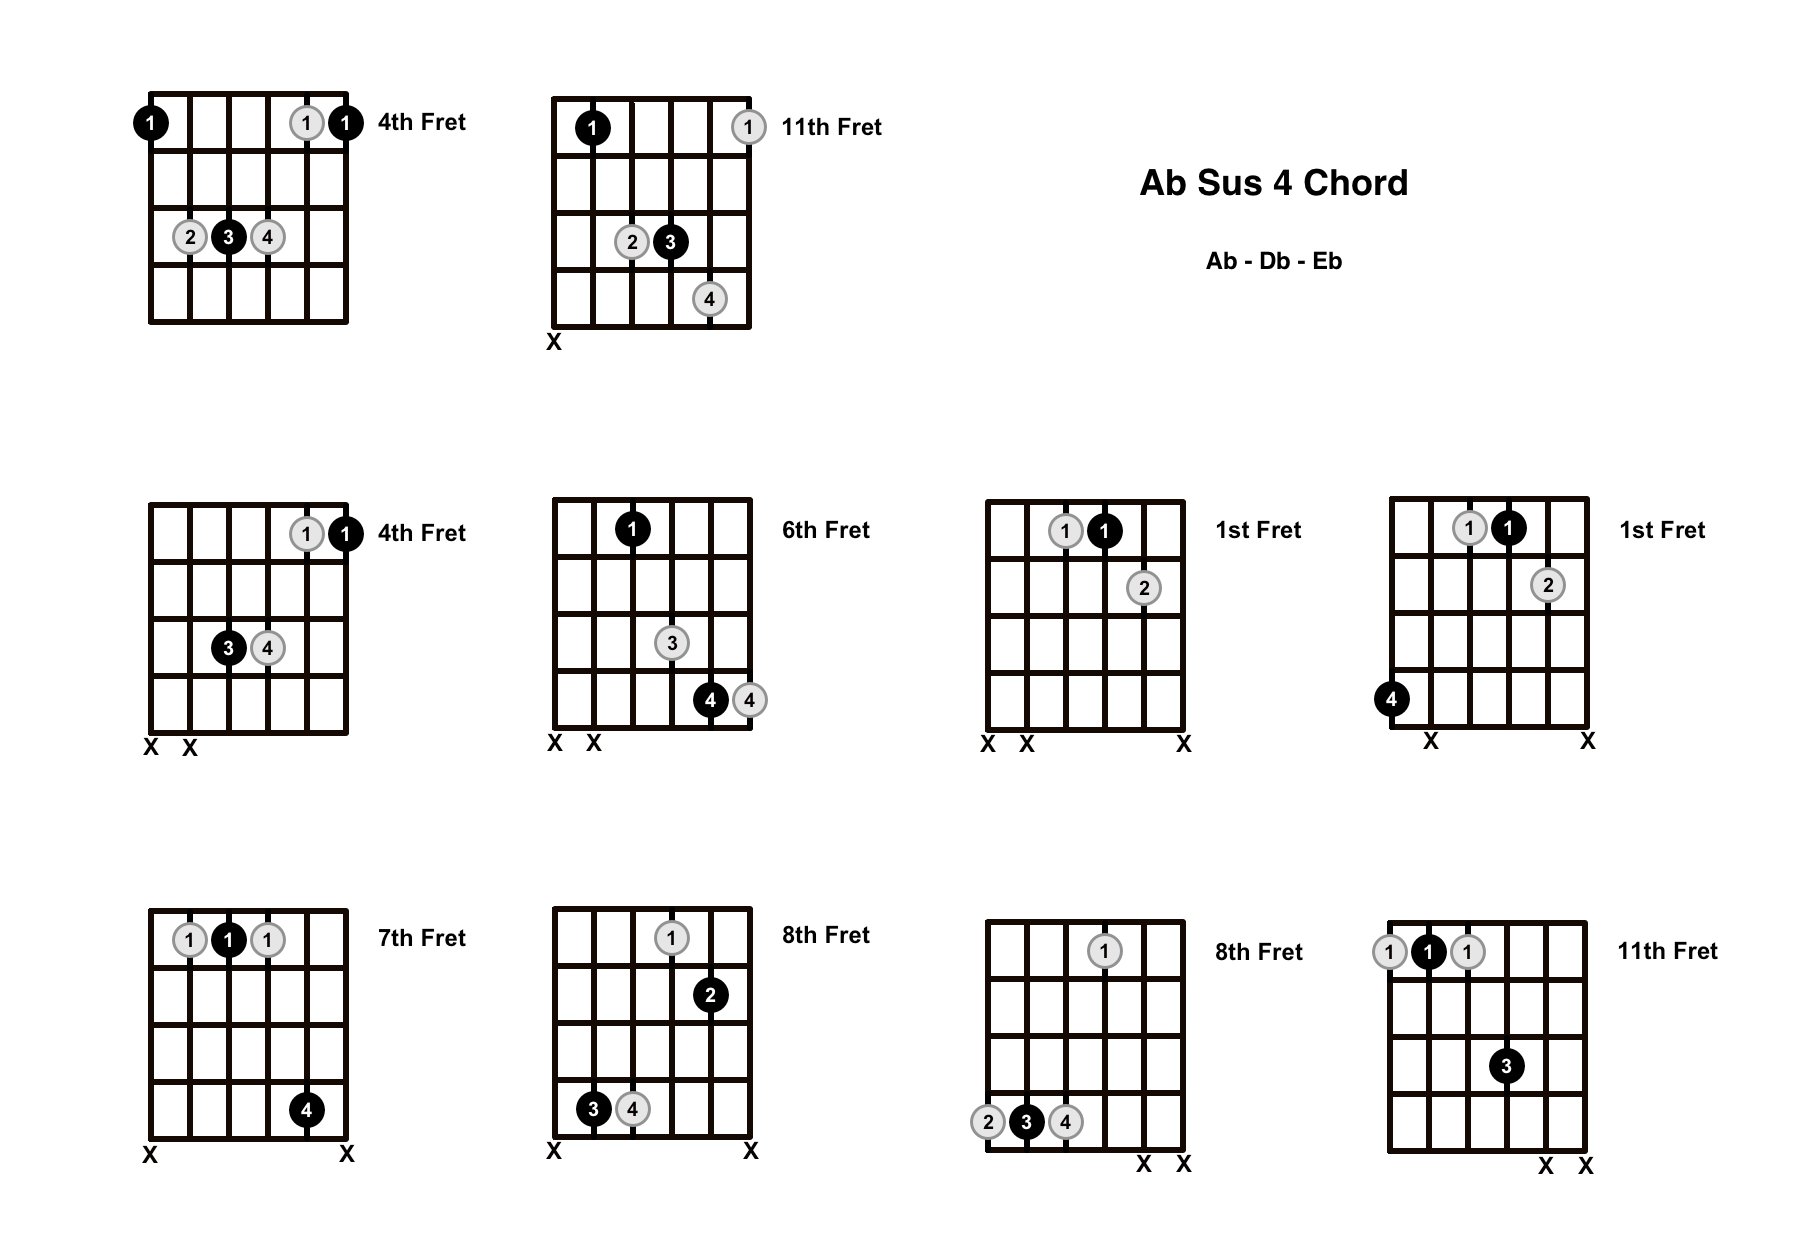 Ab Sus 4 Chord On The Guitar (A Flat Suspended 4) – Diagrams, Finger Positions and Theory